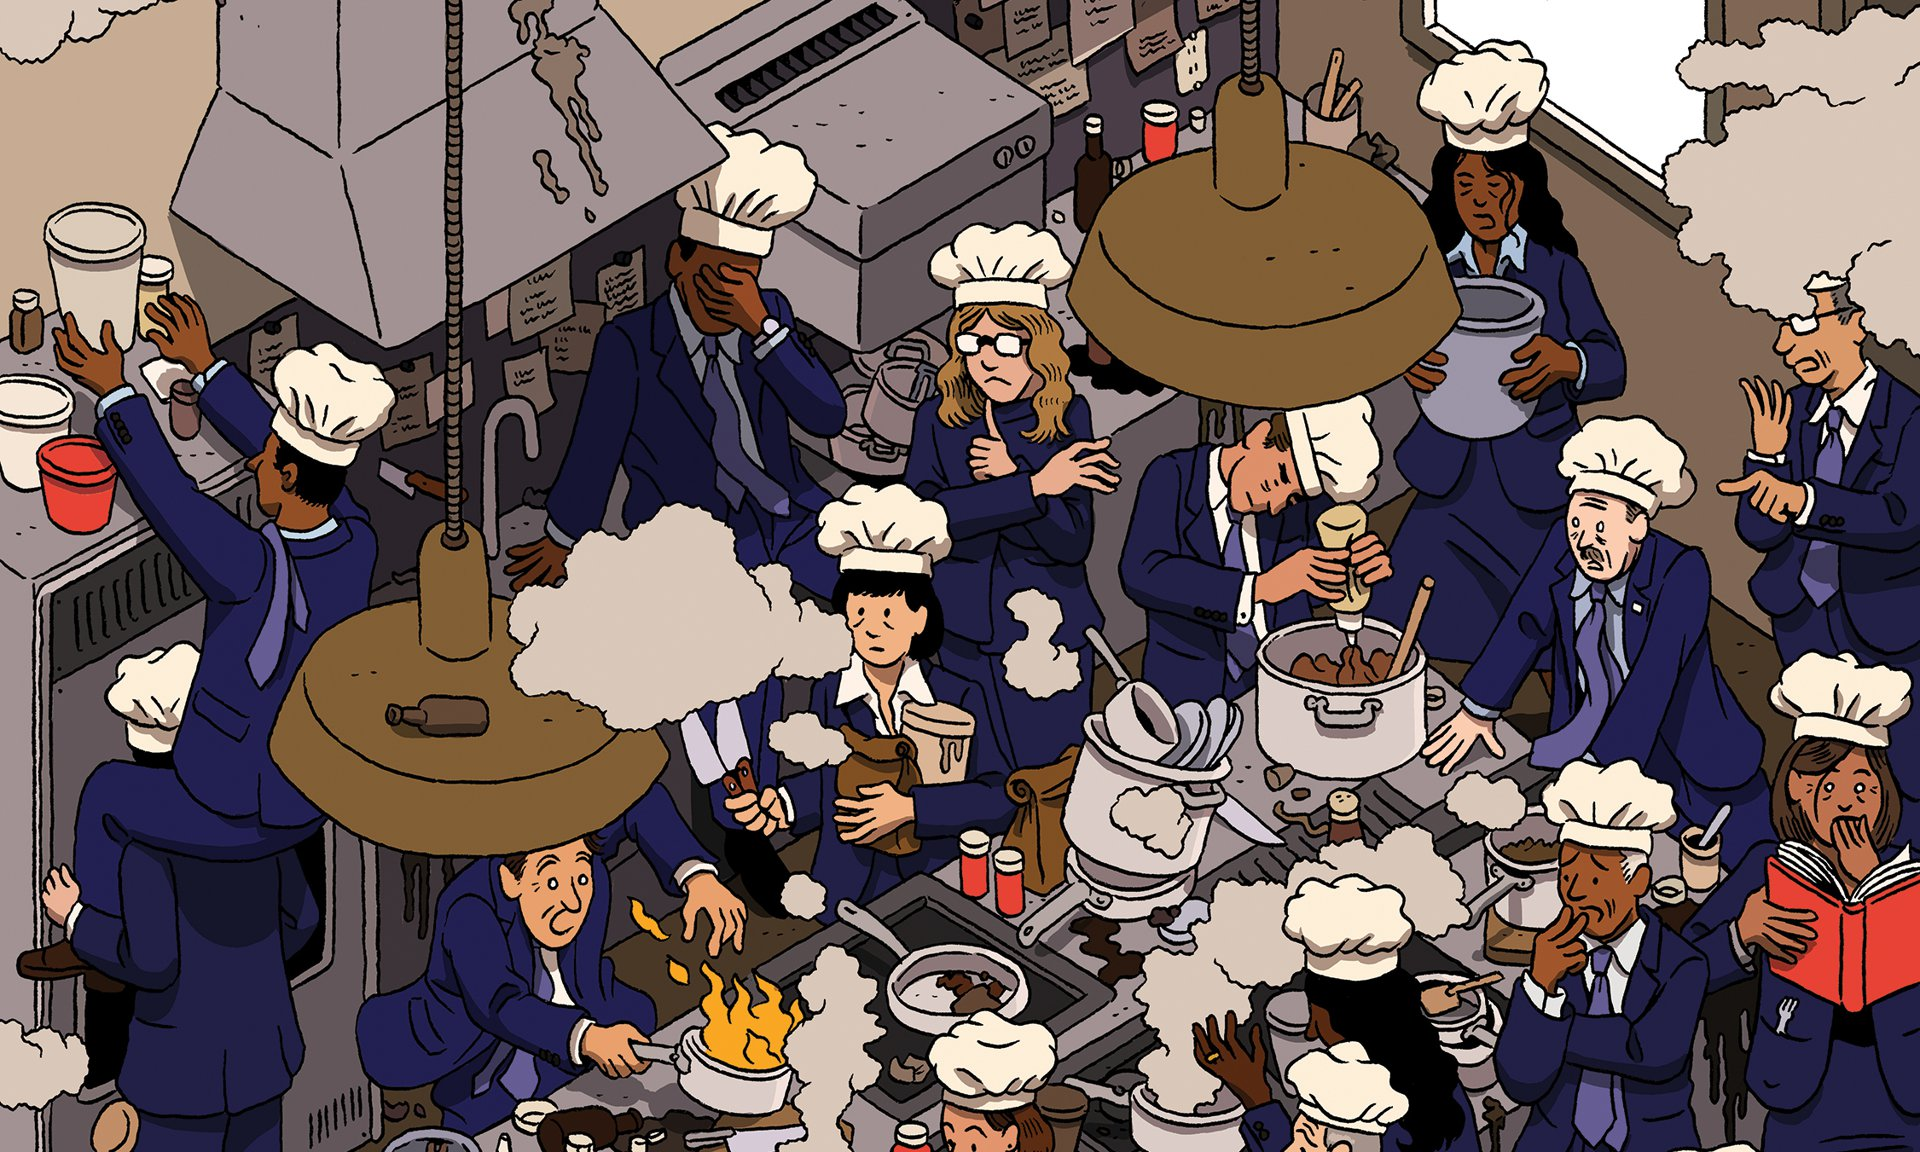 illustration of chefs in a crowded kitchen